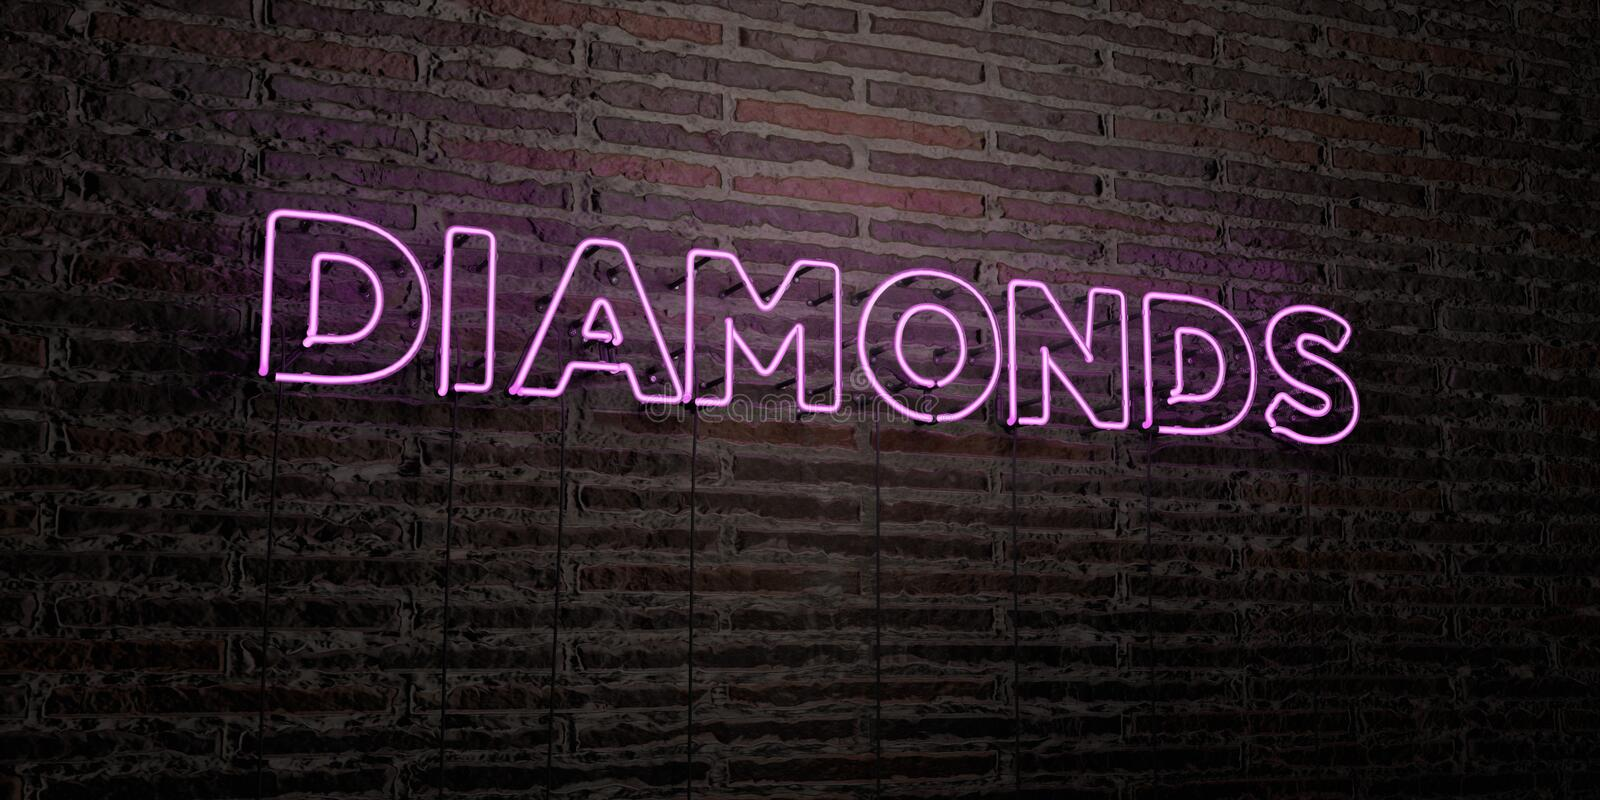 DIAMONDS -Realistic Neon Sign on Brick Wall background - 3D rendered royalty free stock image royalty free illustration